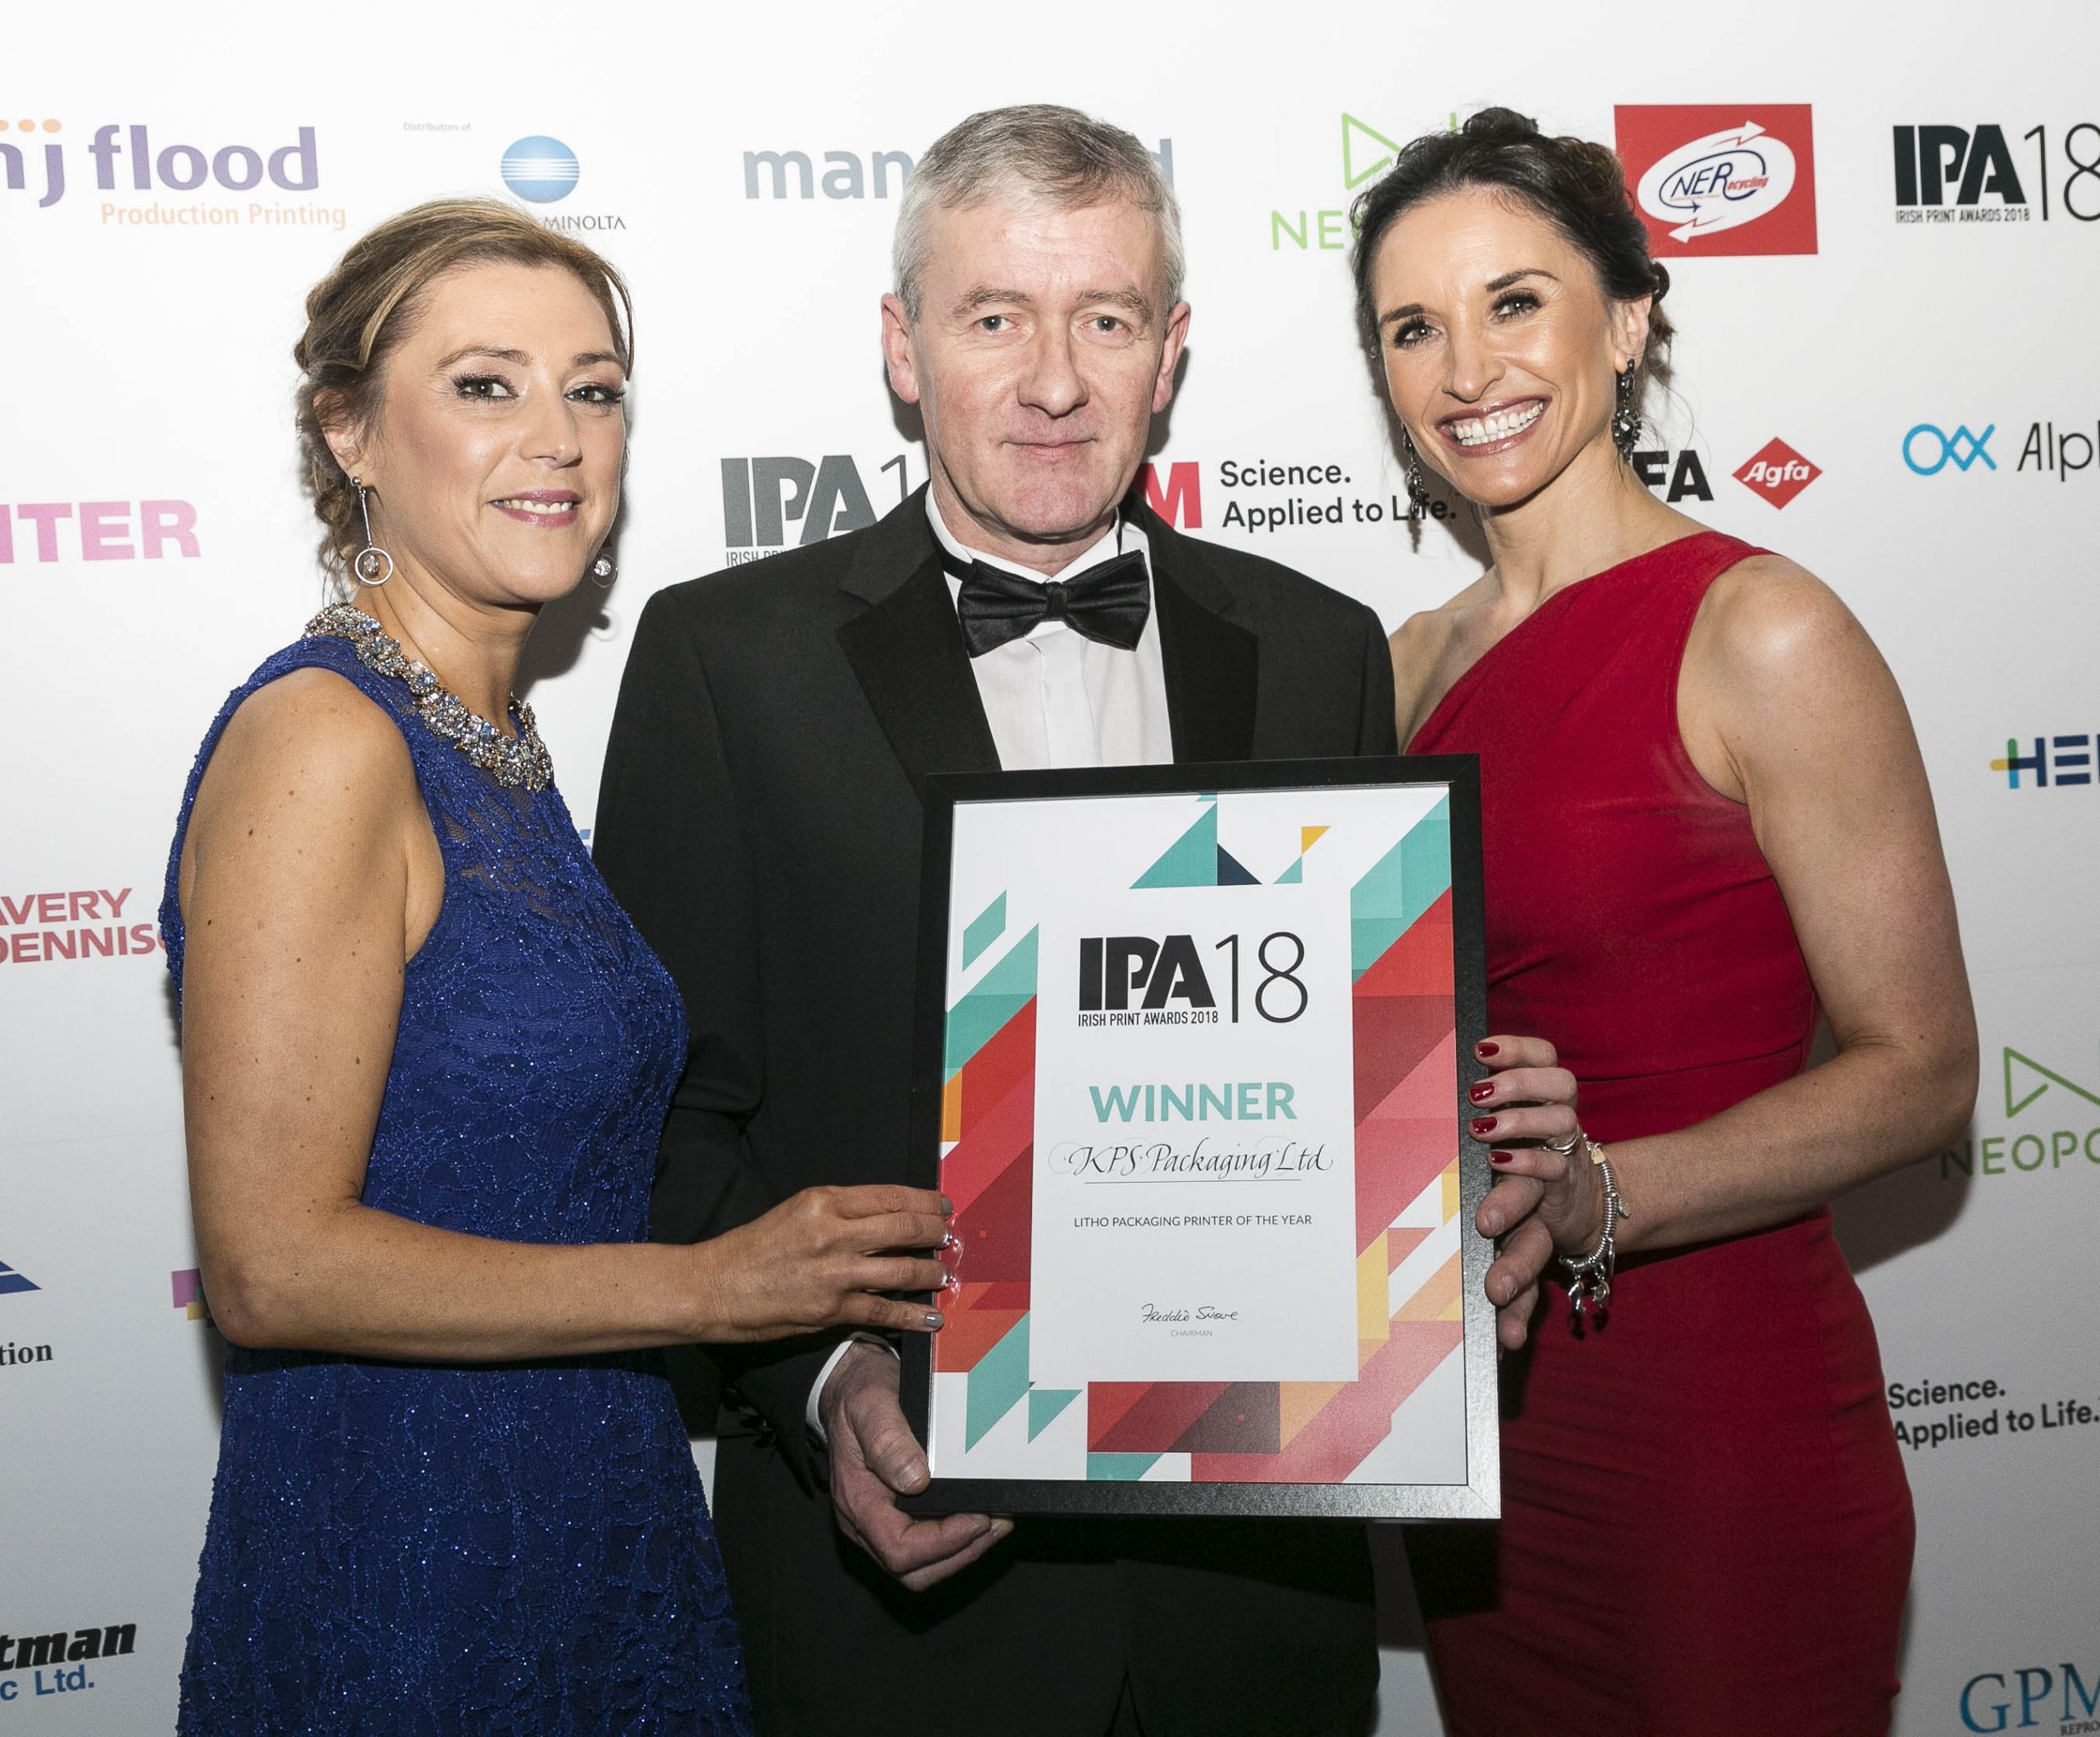 Litho Packaging Printer Of The Year